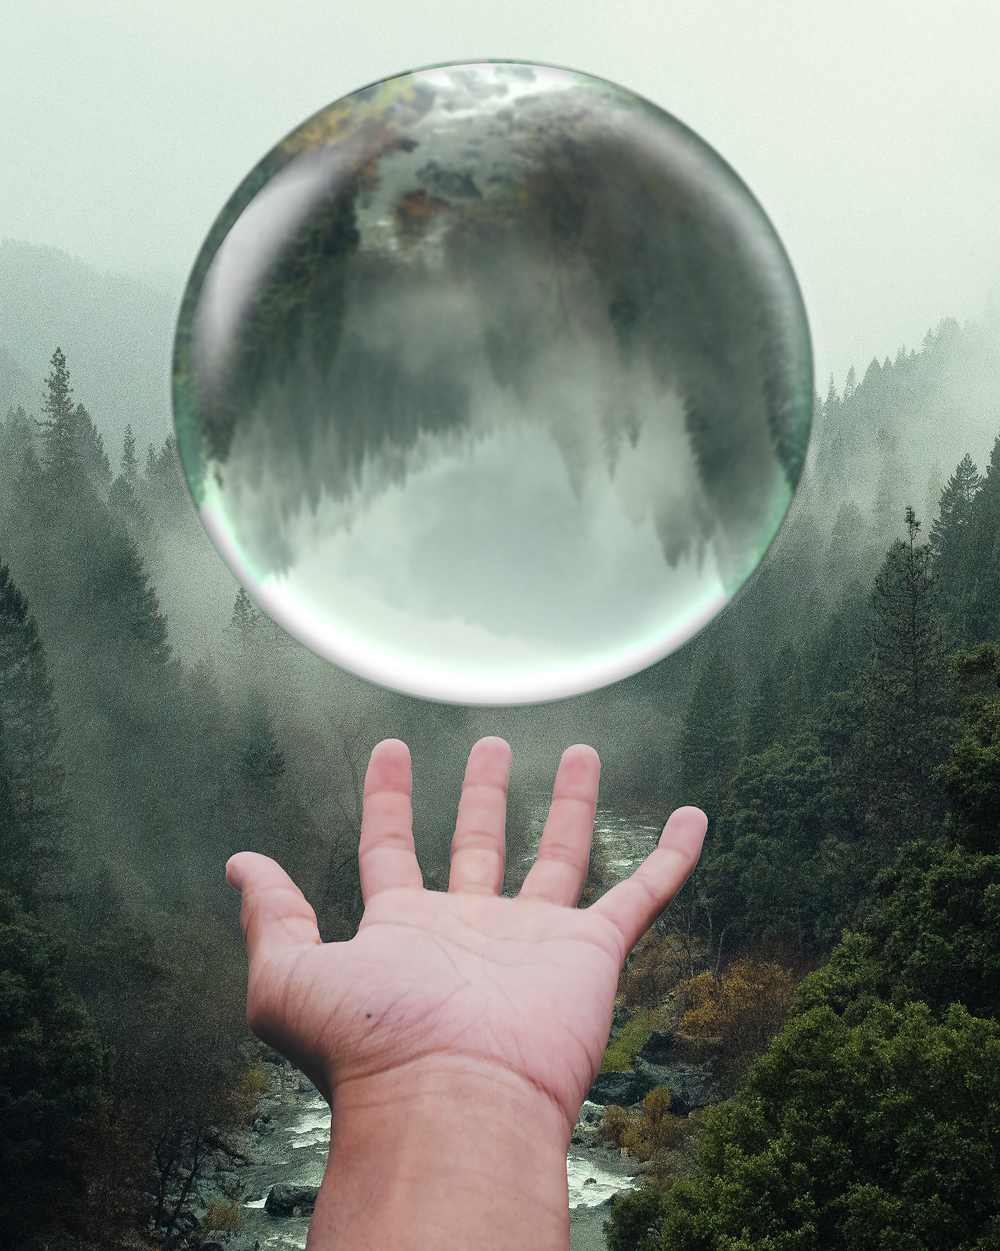 A crystal ball reflects the image of a foggy forest with a stream while hovering above an outstretched hand